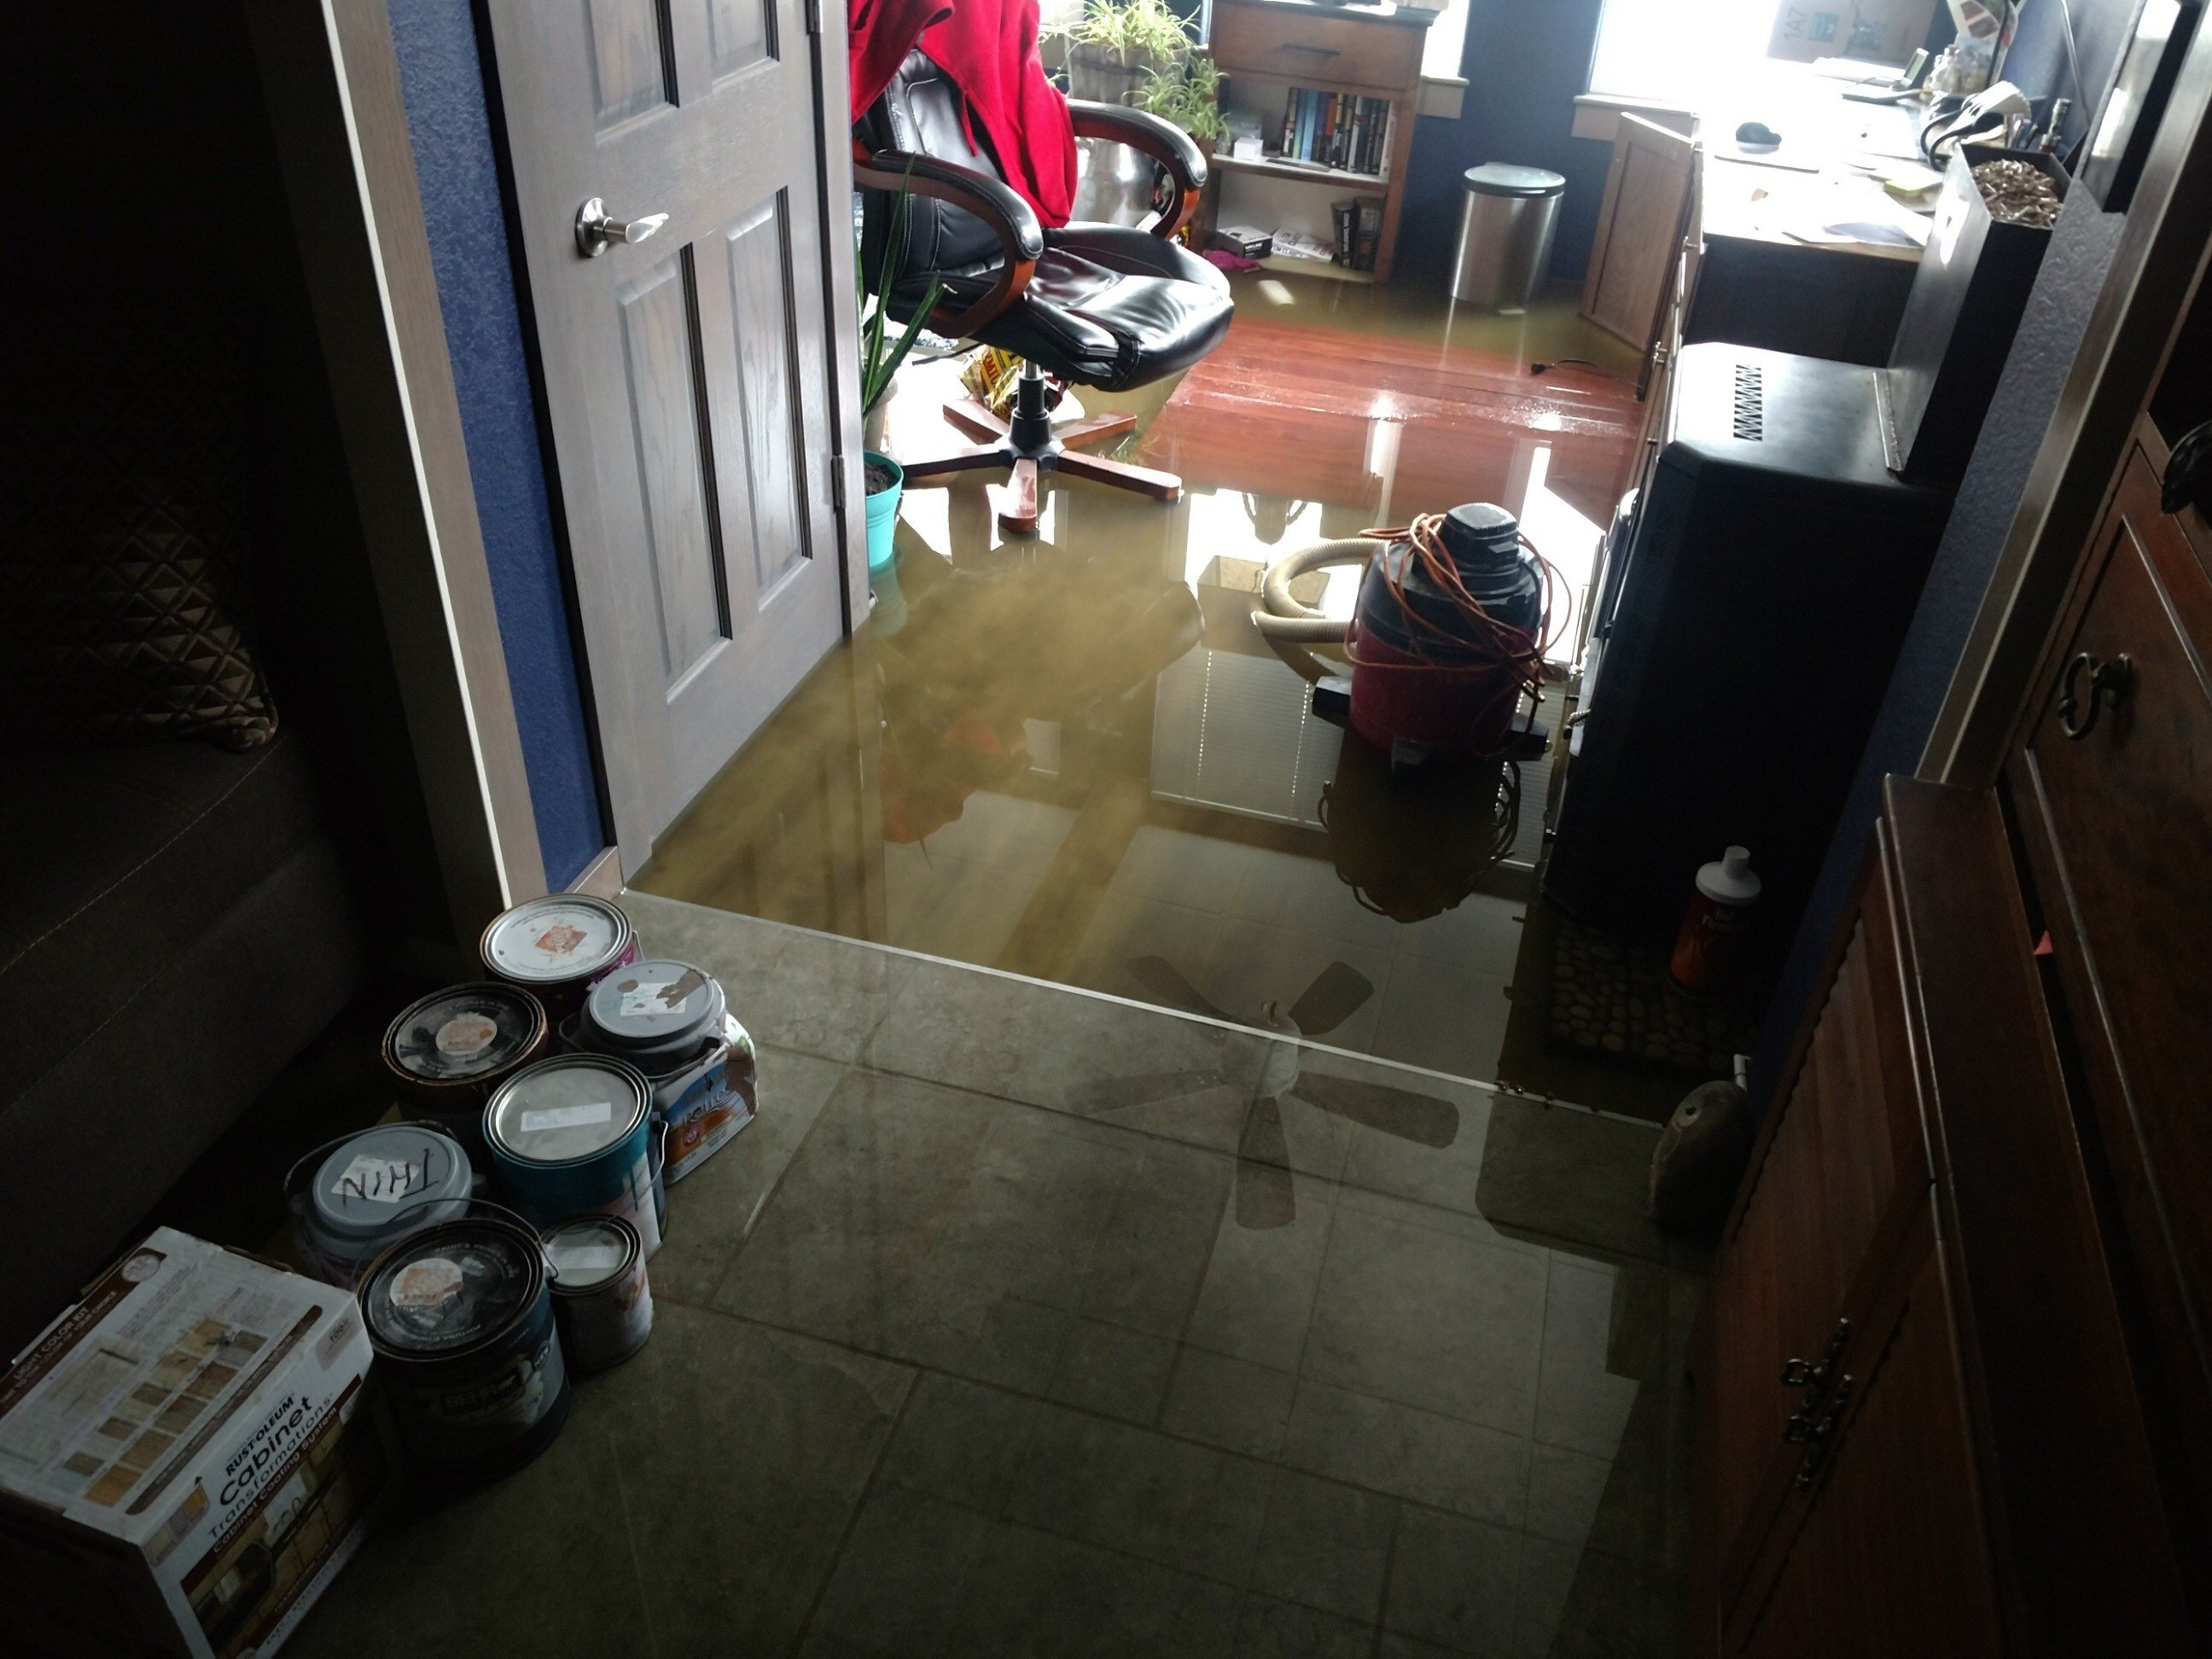 Bellwood family lost dream lake house in flooding - KLKN-TV